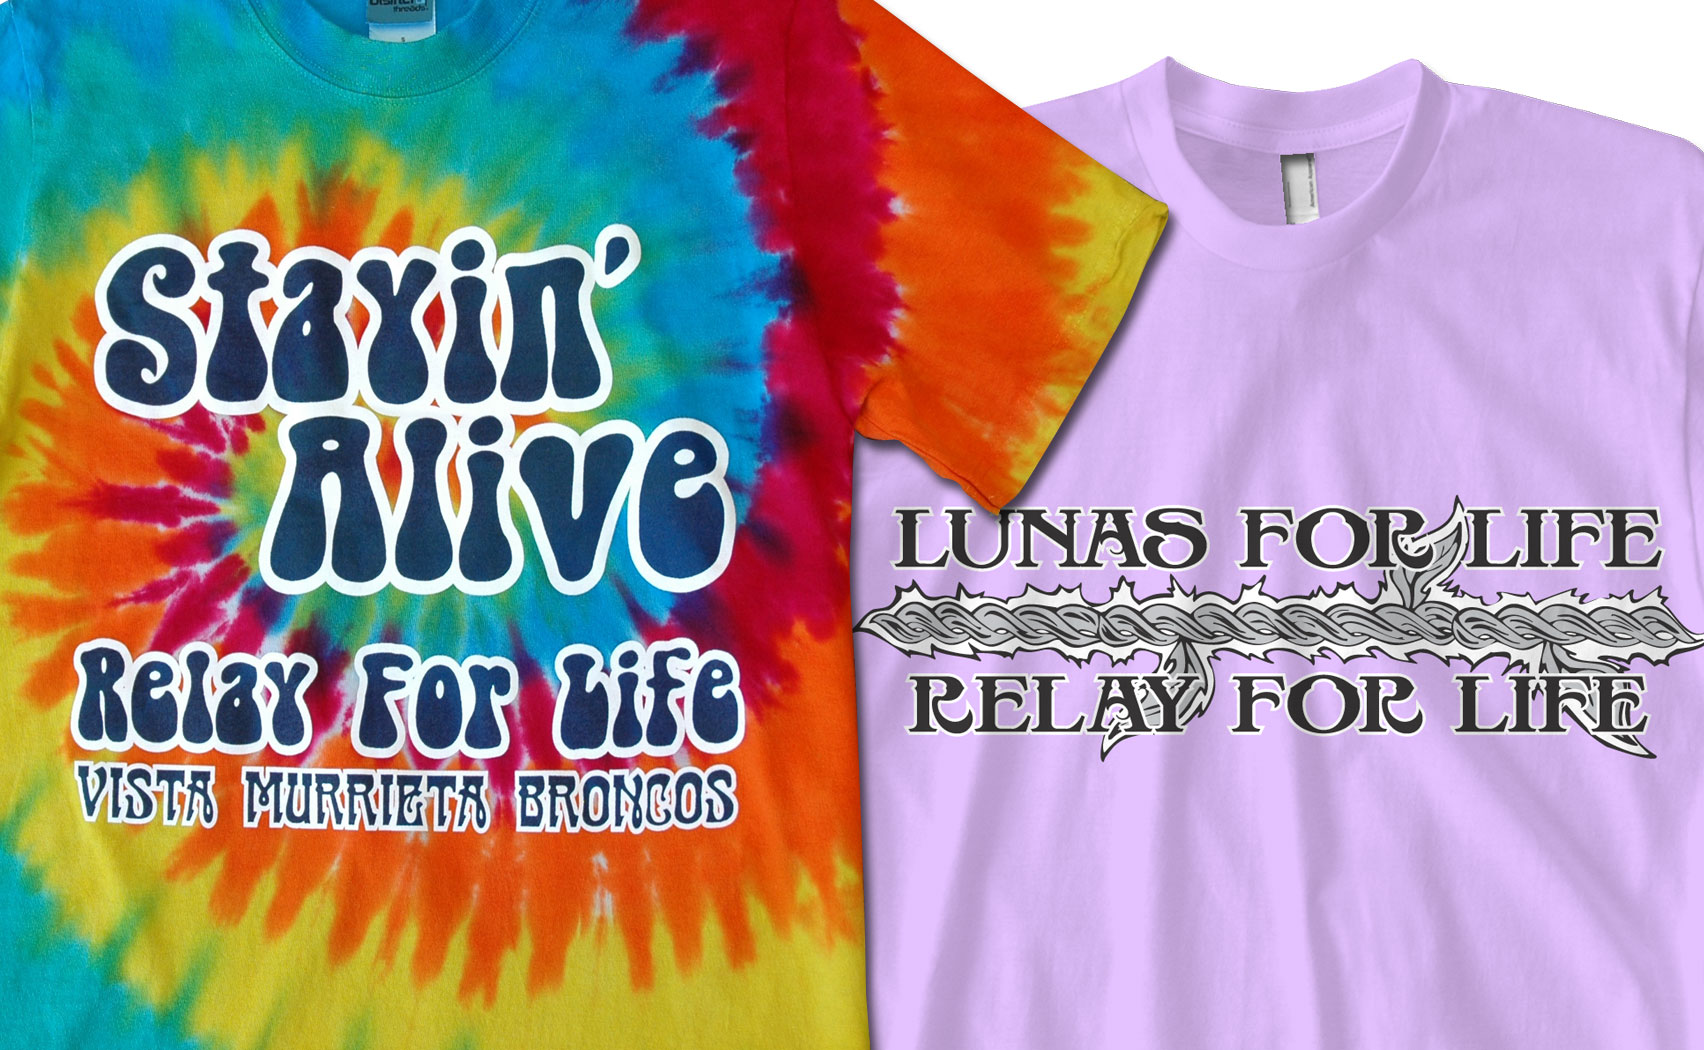 Relay for Life T-shirts –  Working with You to Create for a Cause